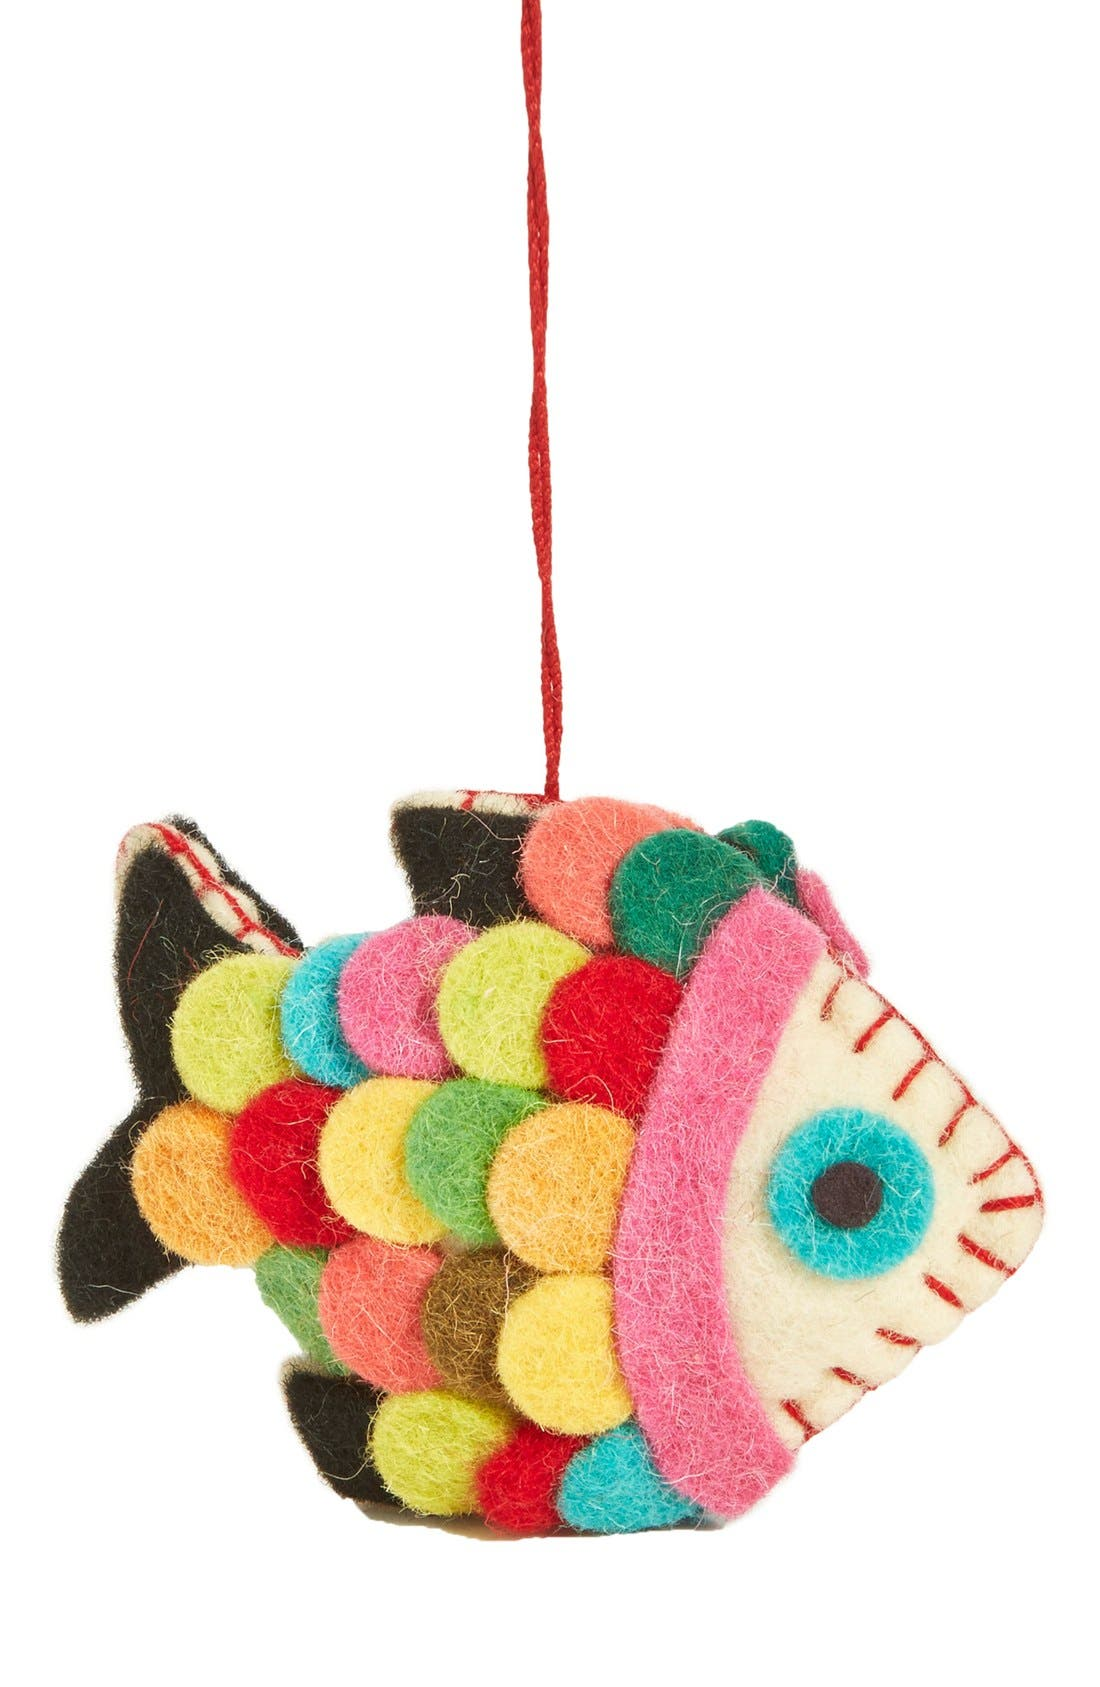 Alternate Image 1 Selected - Creative Co-Op Felt Fish Ornament